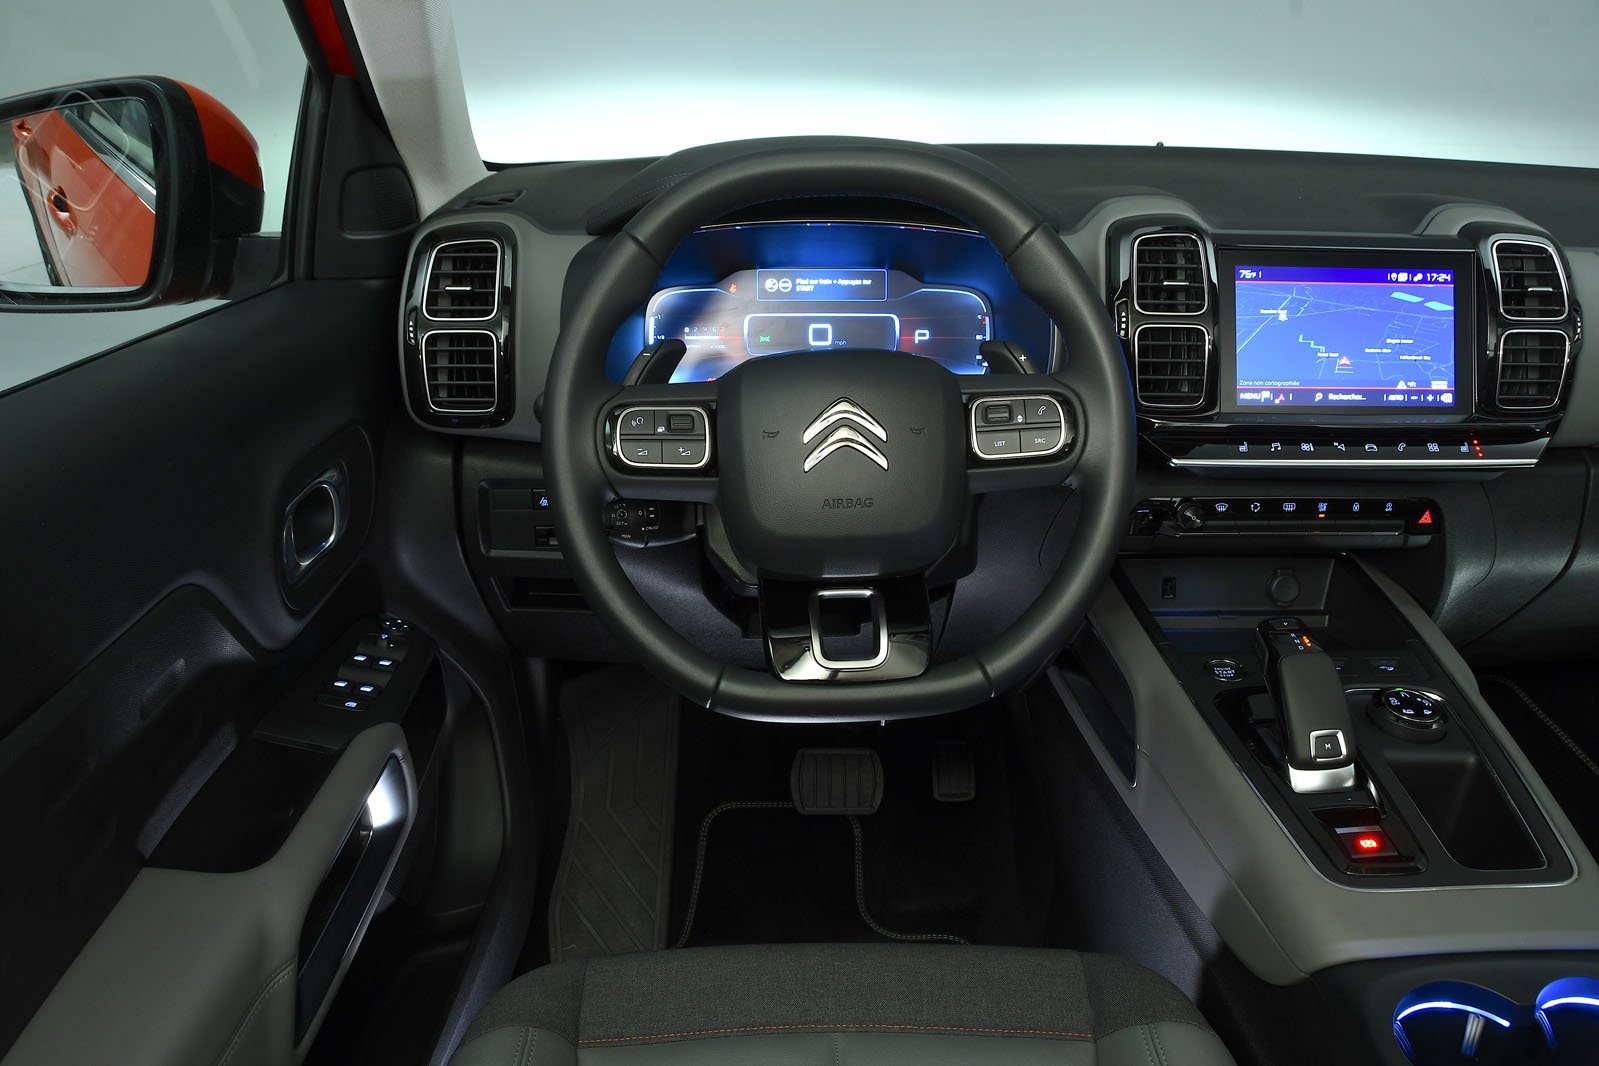 Citroen C5 Aircross interior